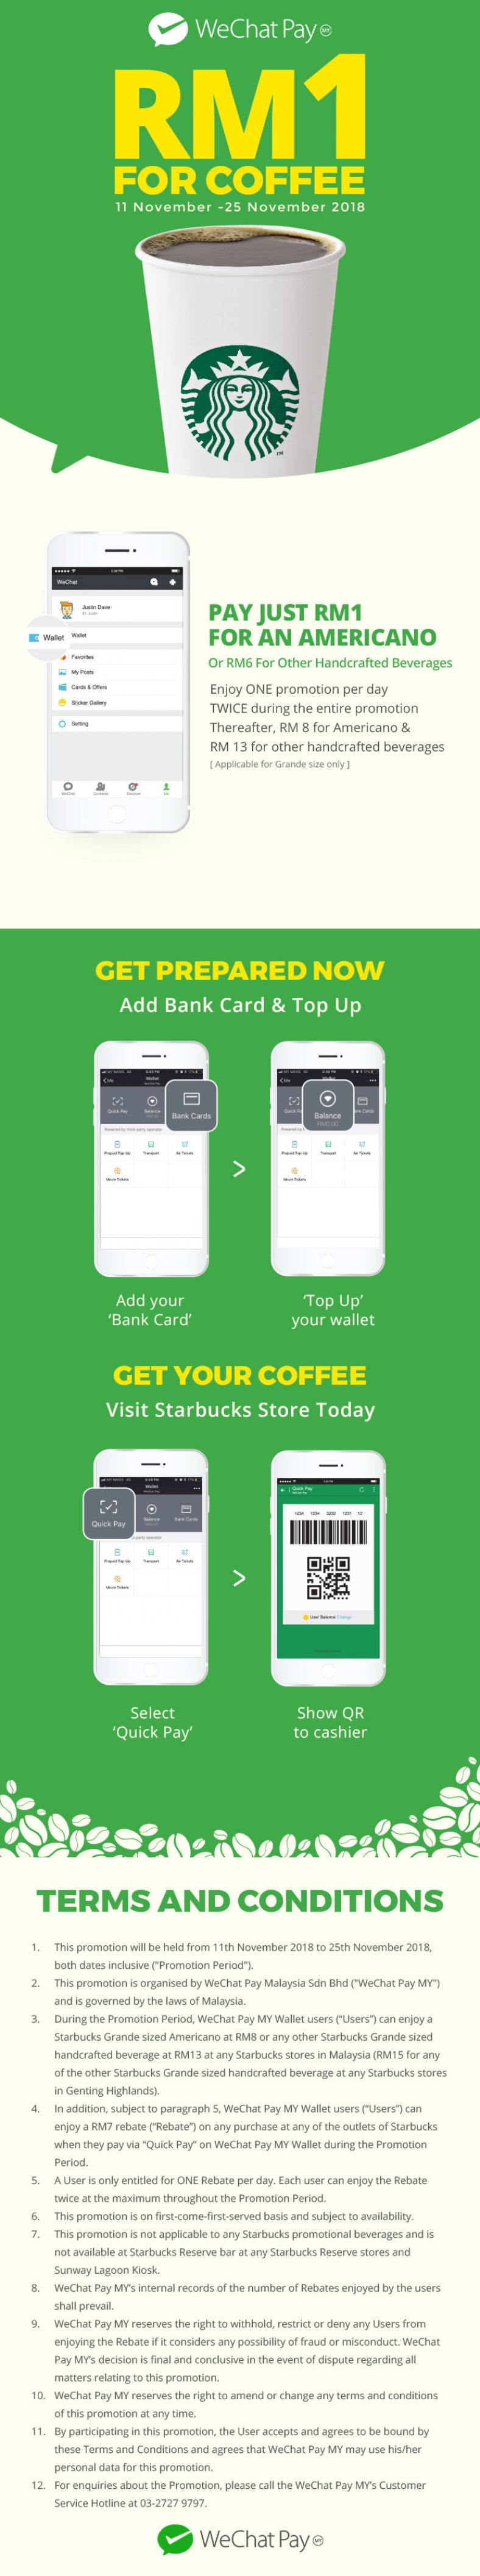 Starbucks Coffee For Only RM1 (Extended Offer) - Foodie